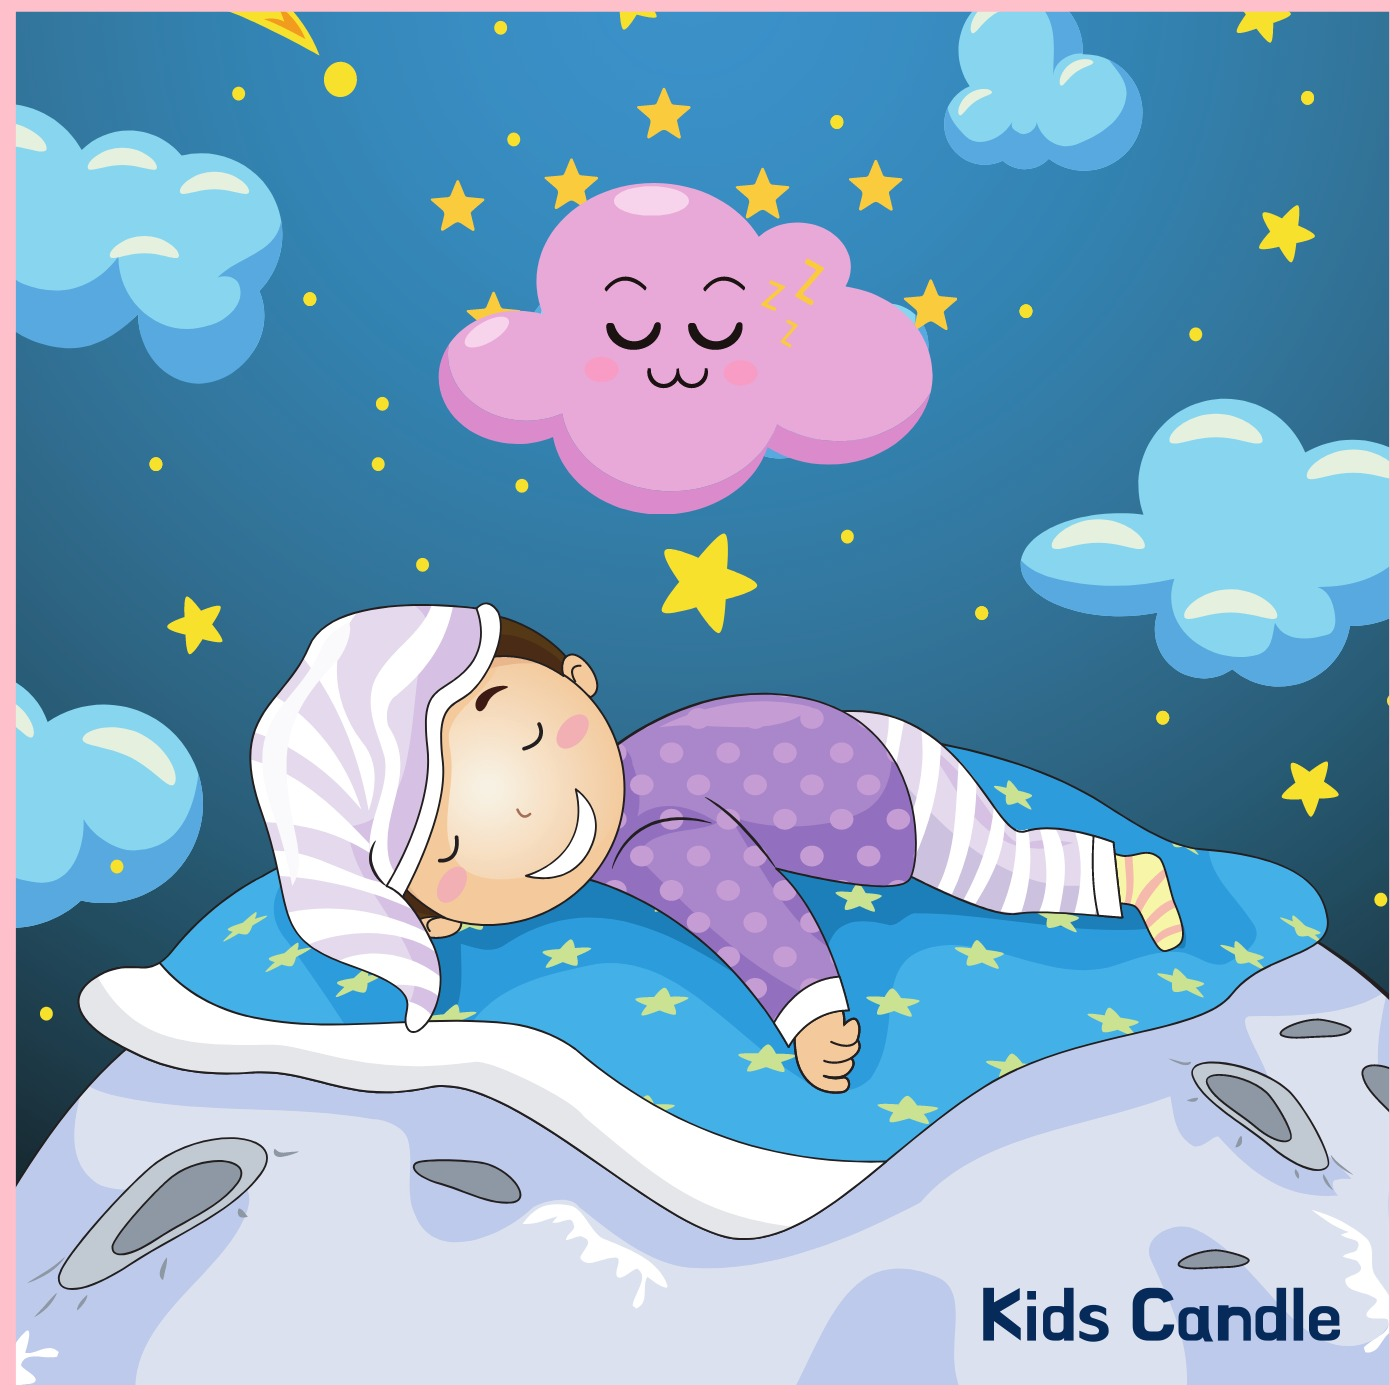 Kids Candle Podcast